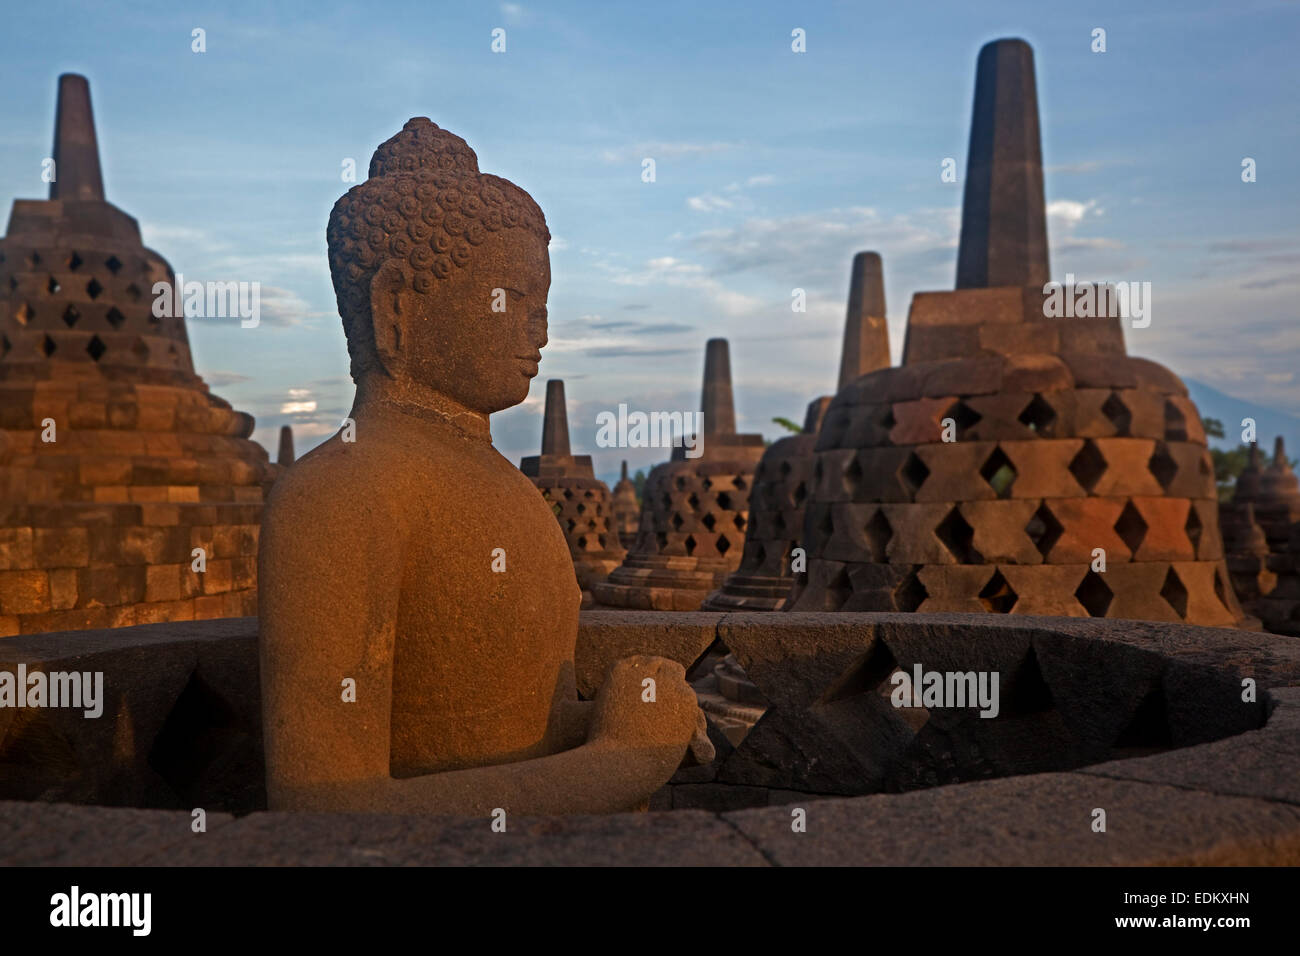 Buddha statue and stupas at Borobudur / Barabudur, 9th-century Mahayana Buddhist Temple in Magelang, Central Java, - Stock Image